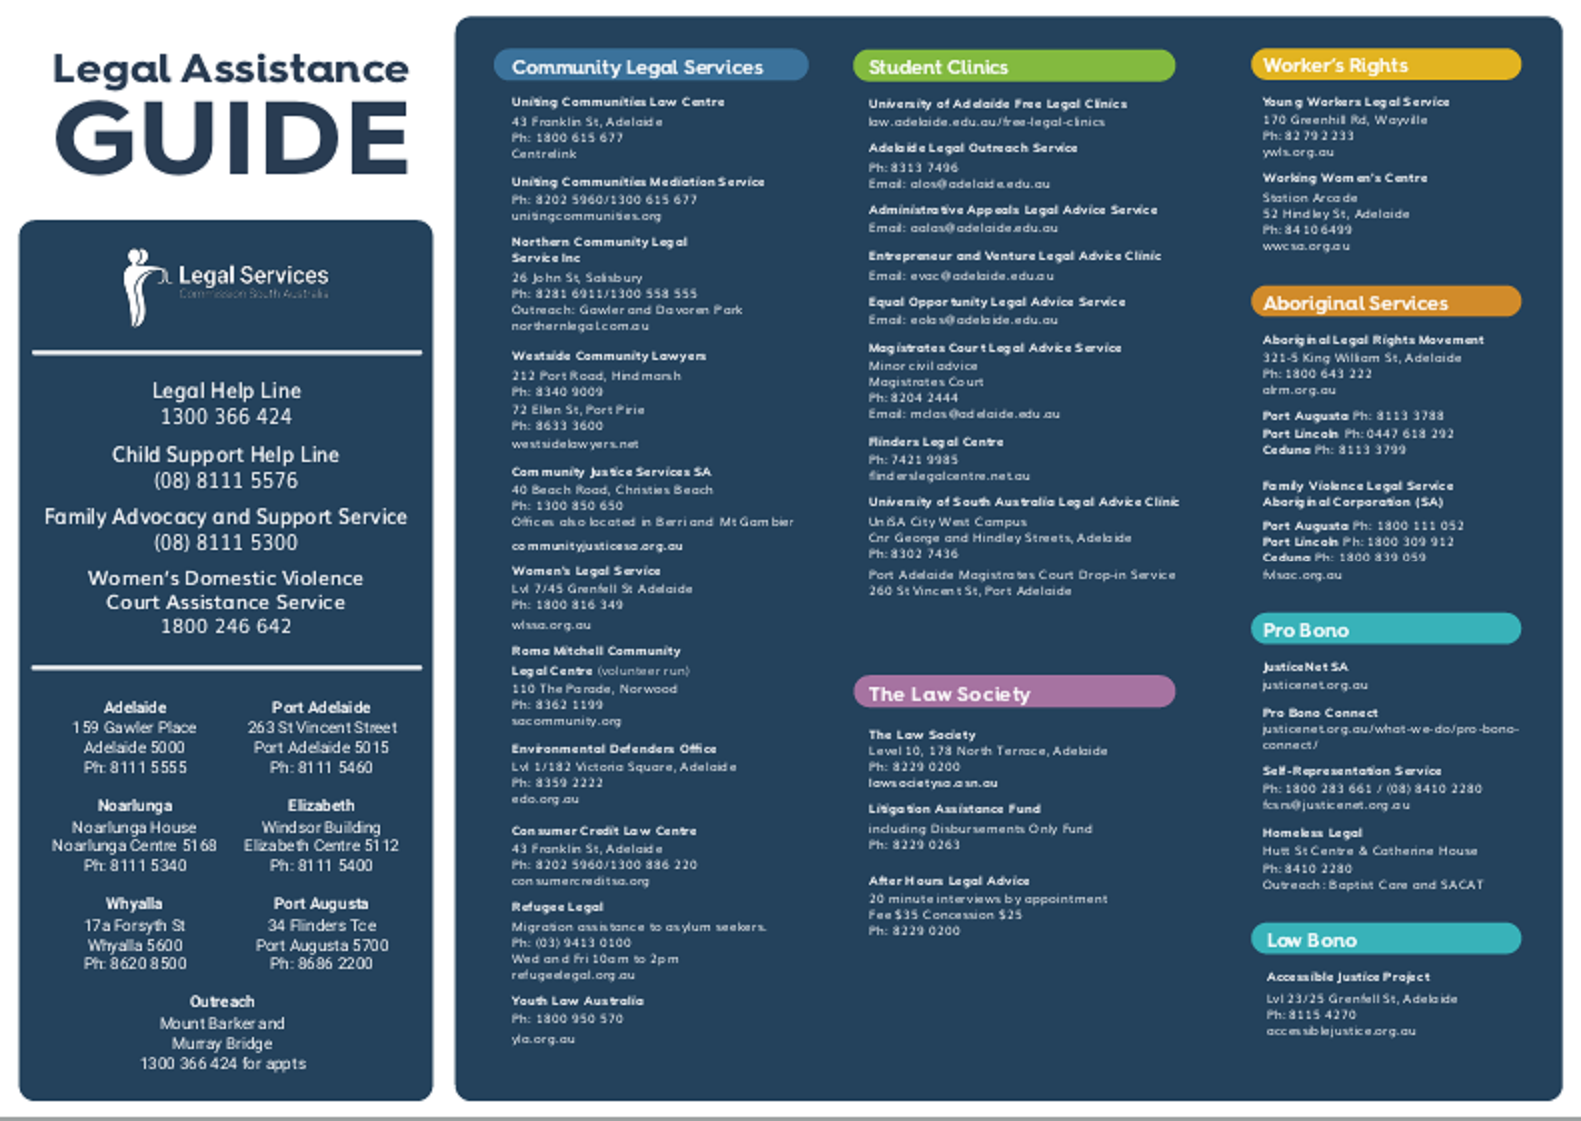 Legal Assistance Guide